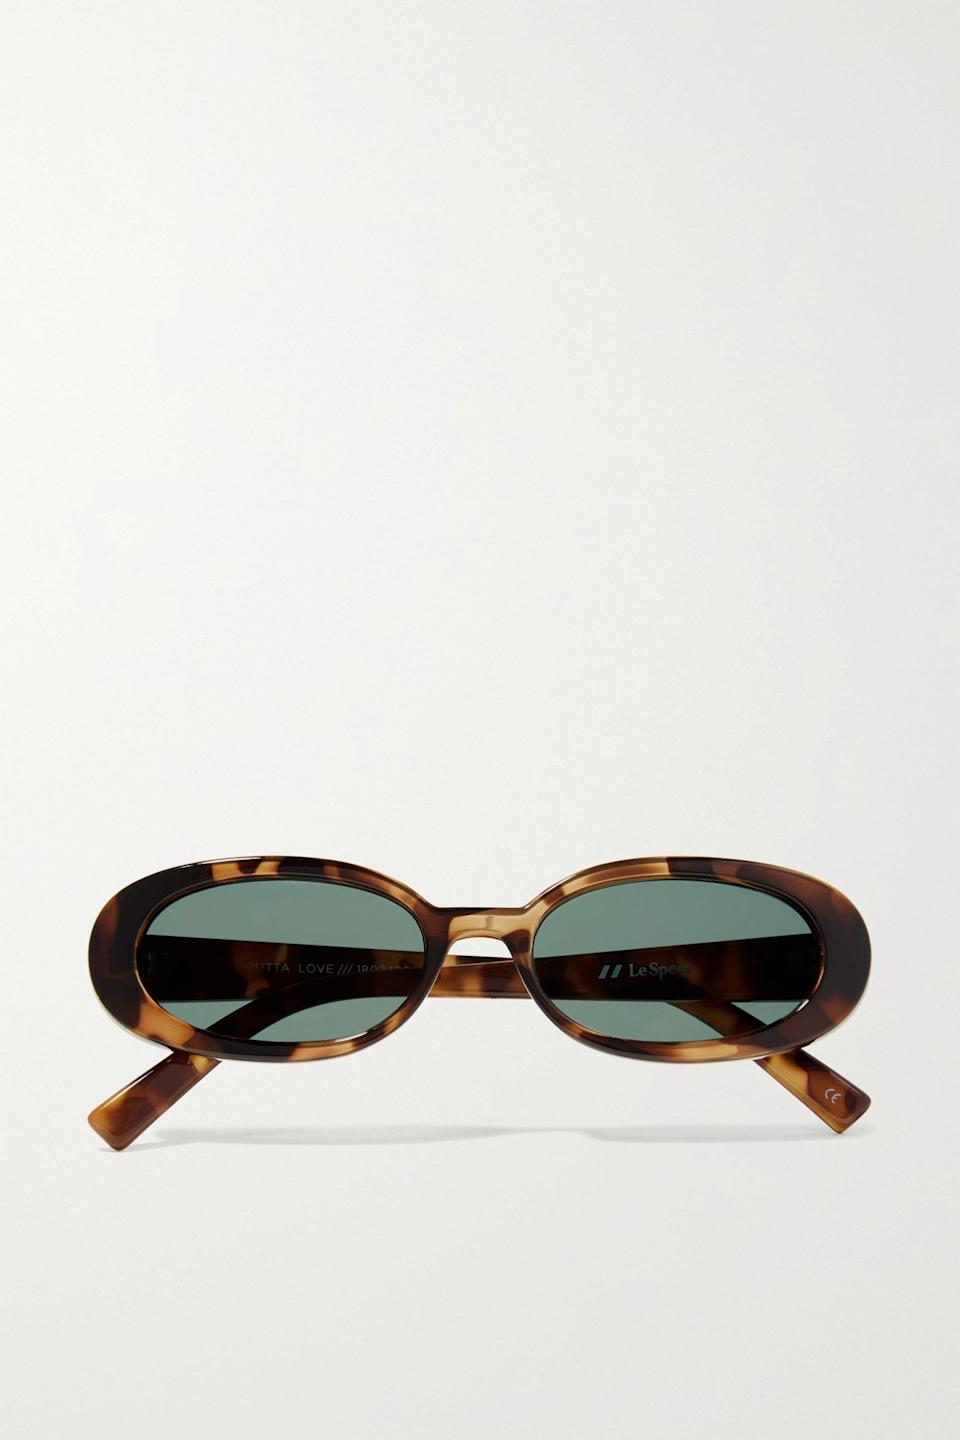 <p>These <span>Le Specs Tortoiseshell Outta Love Oval-frame Sunglasses</span> ($59) have an effortlessly cool air.</p>